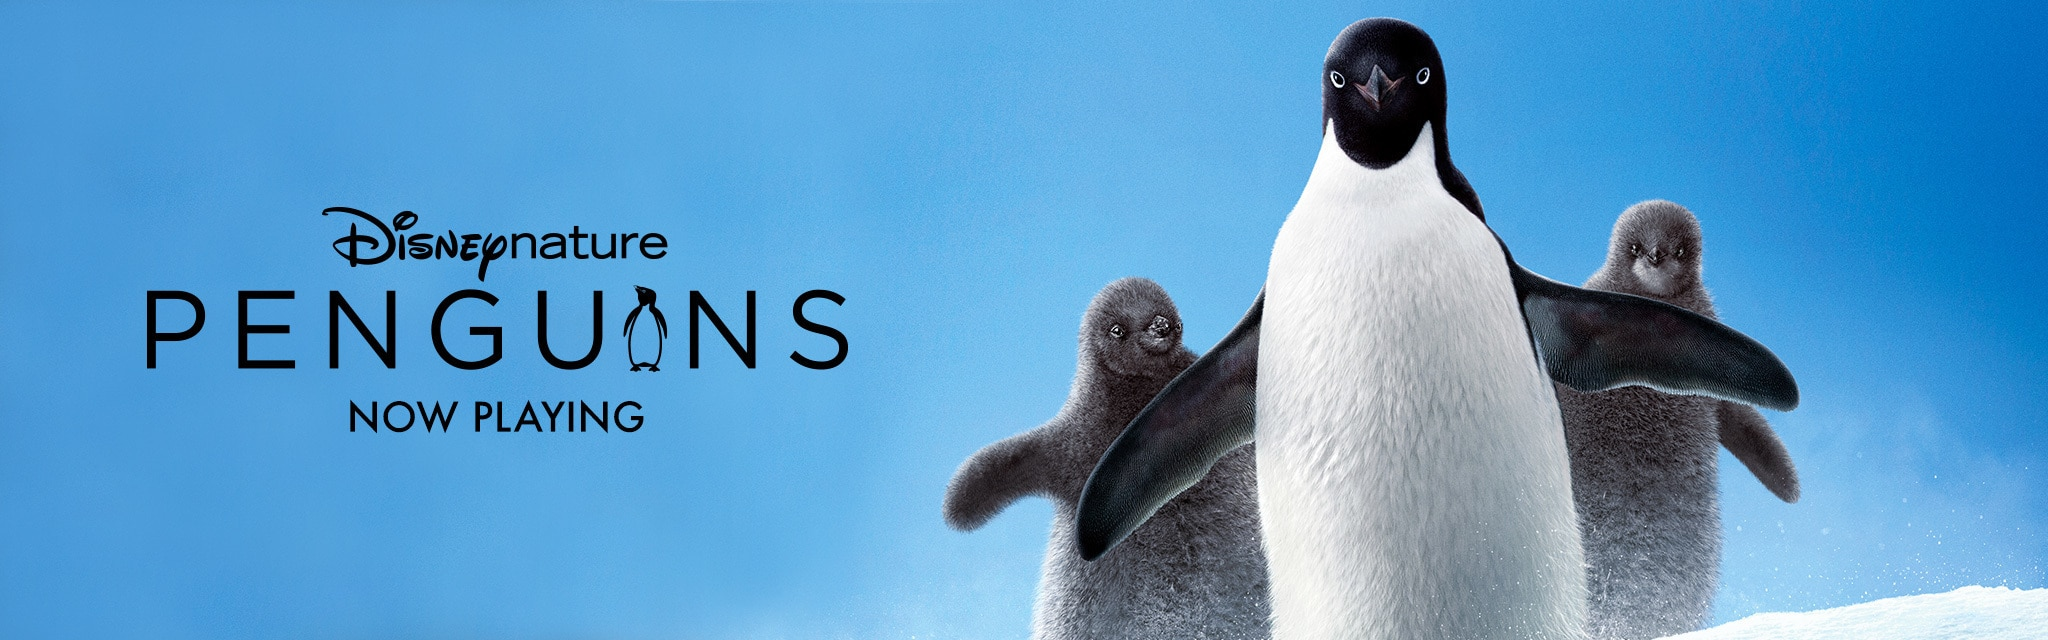 Disneynature Penguins - Now Playing